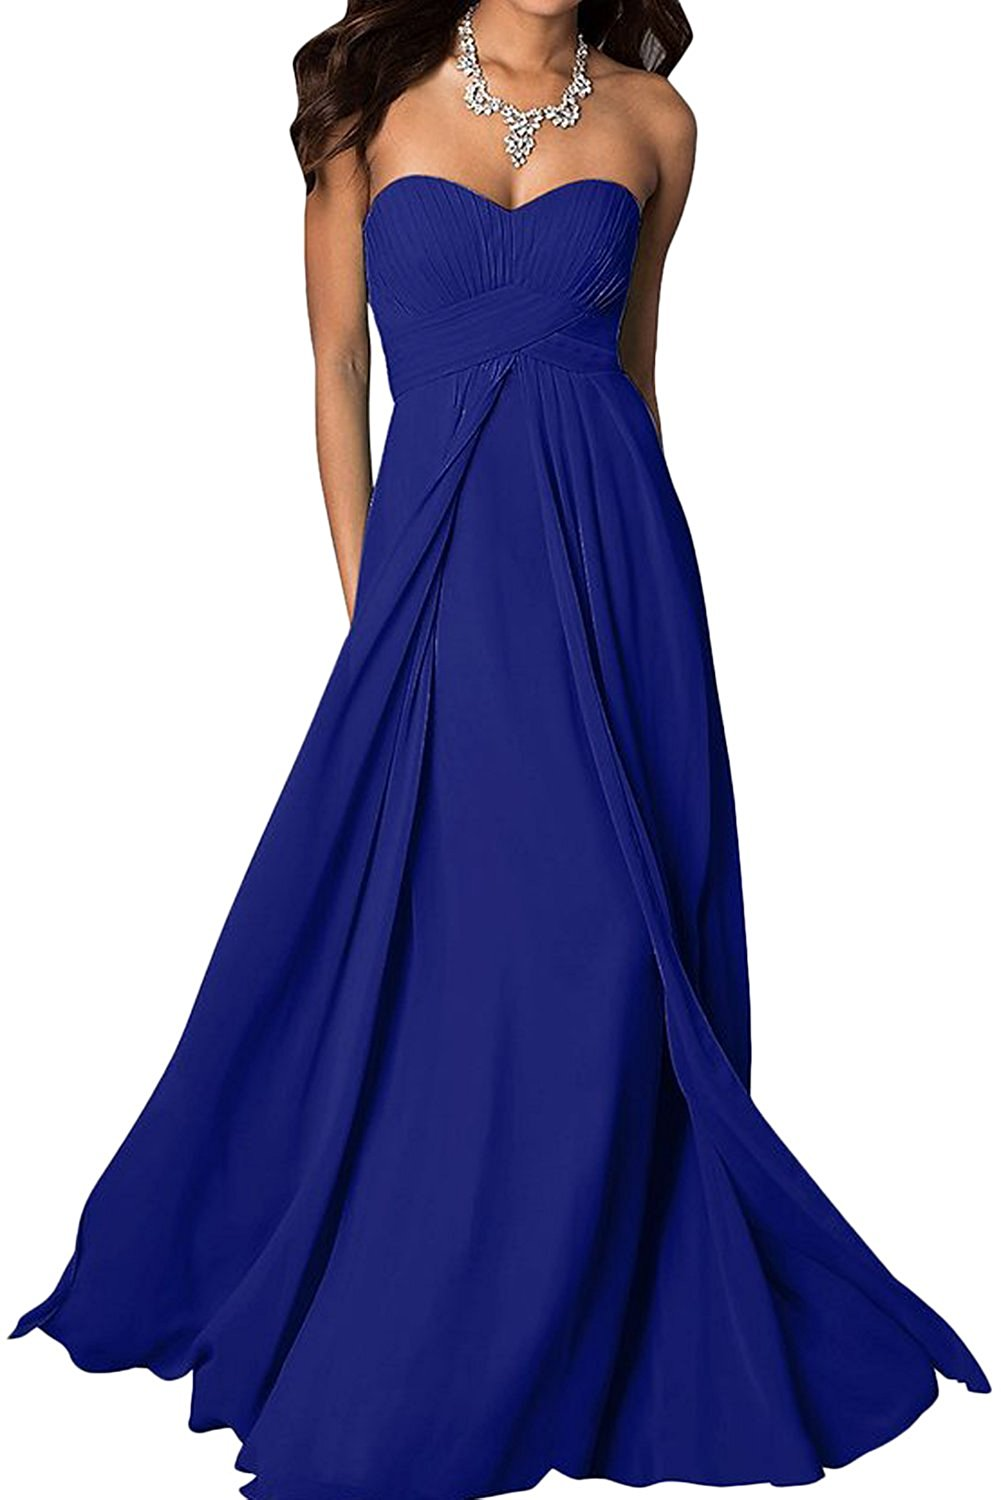 madison royal sapphire cobalt blue chiffon strapless long maxi bridesmaid wedding bride bridal prom ballgown evening formal occasion dress uk